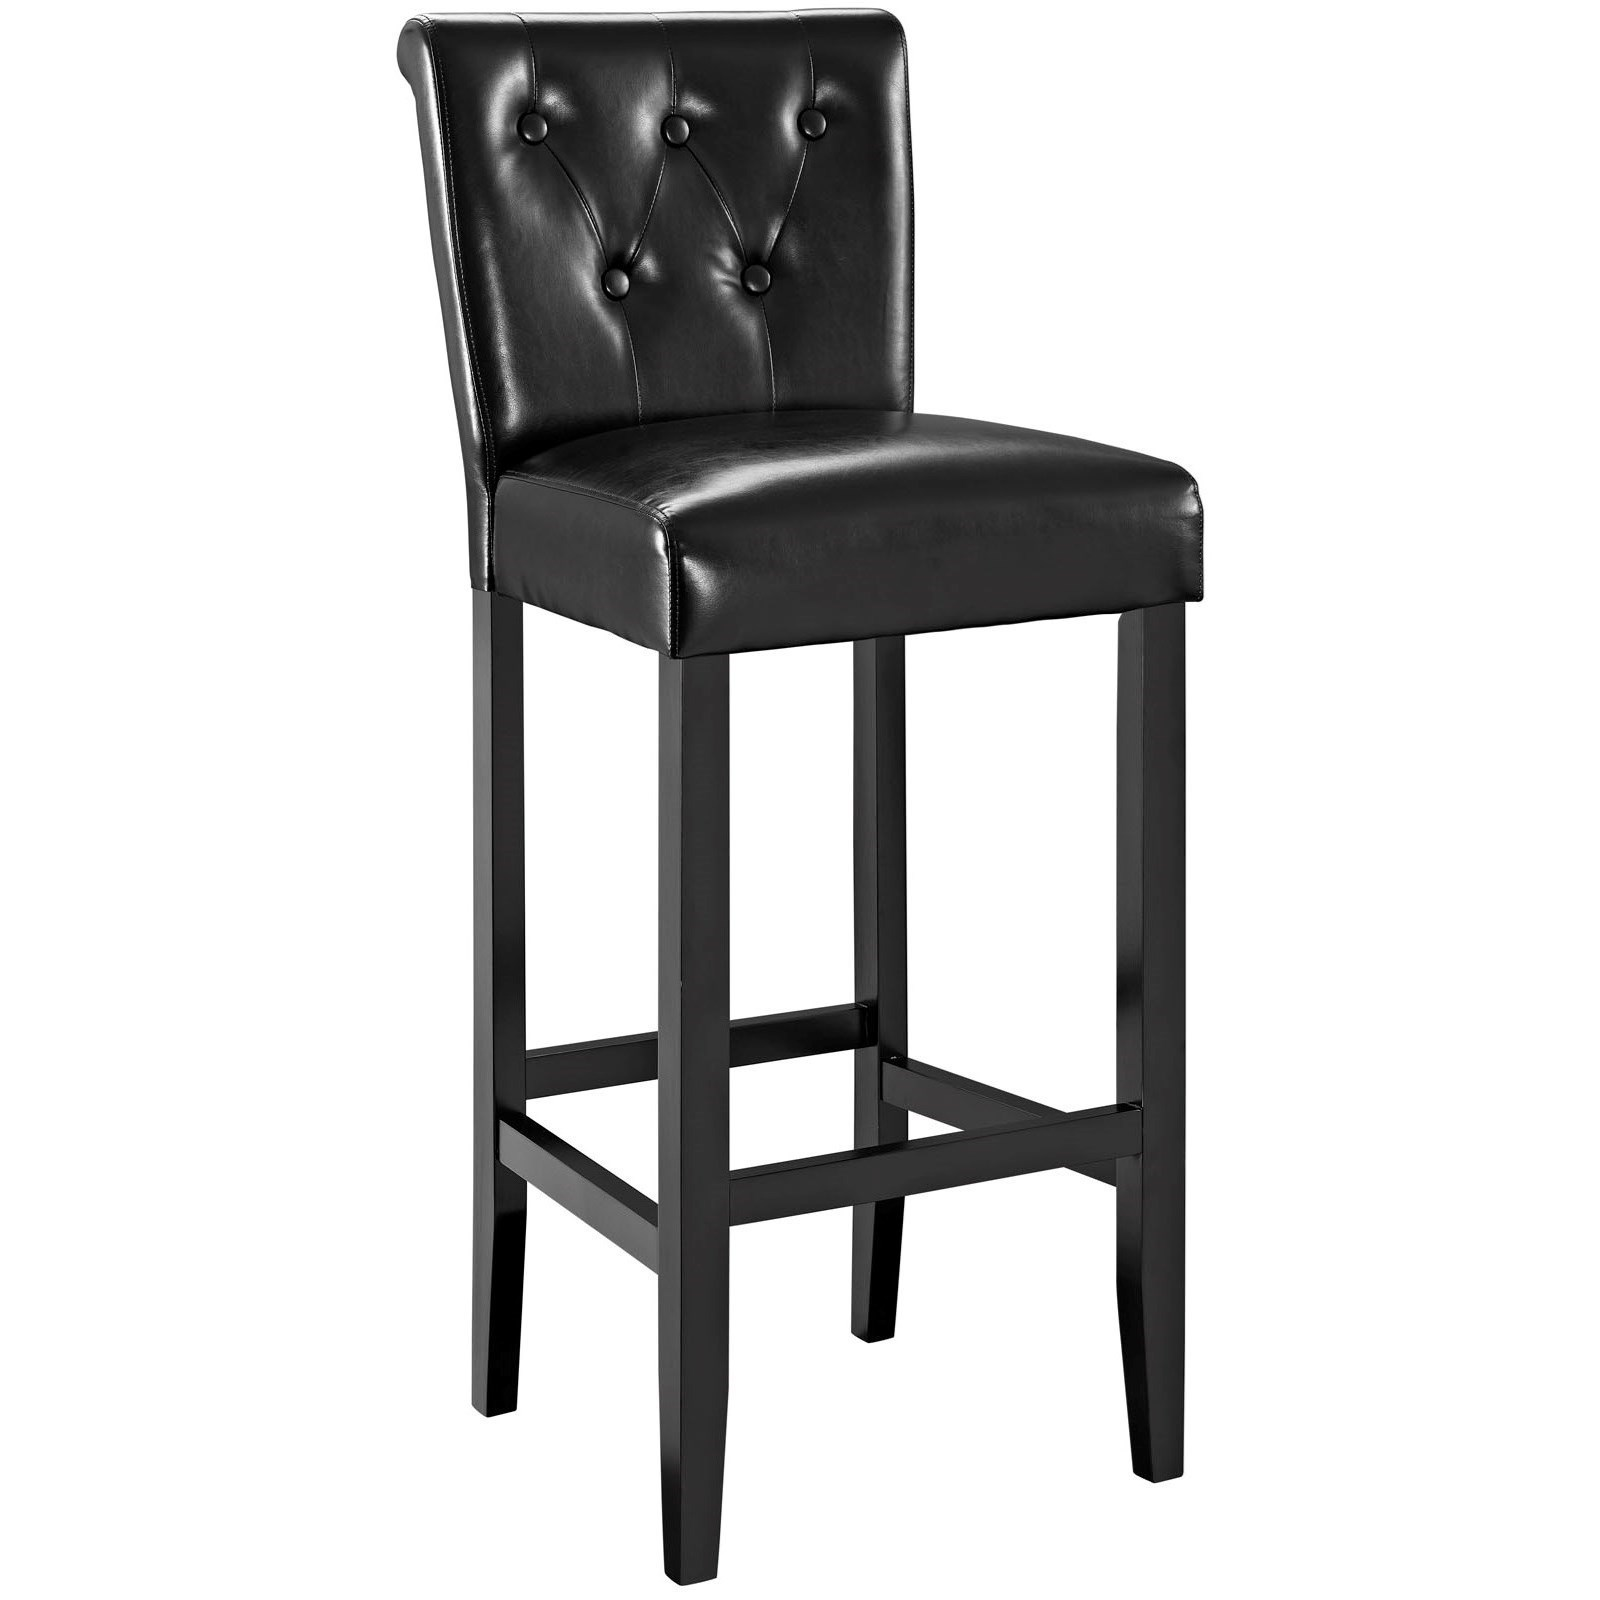 Tender Upholstered Bar Stool With Button Tufting By Modway